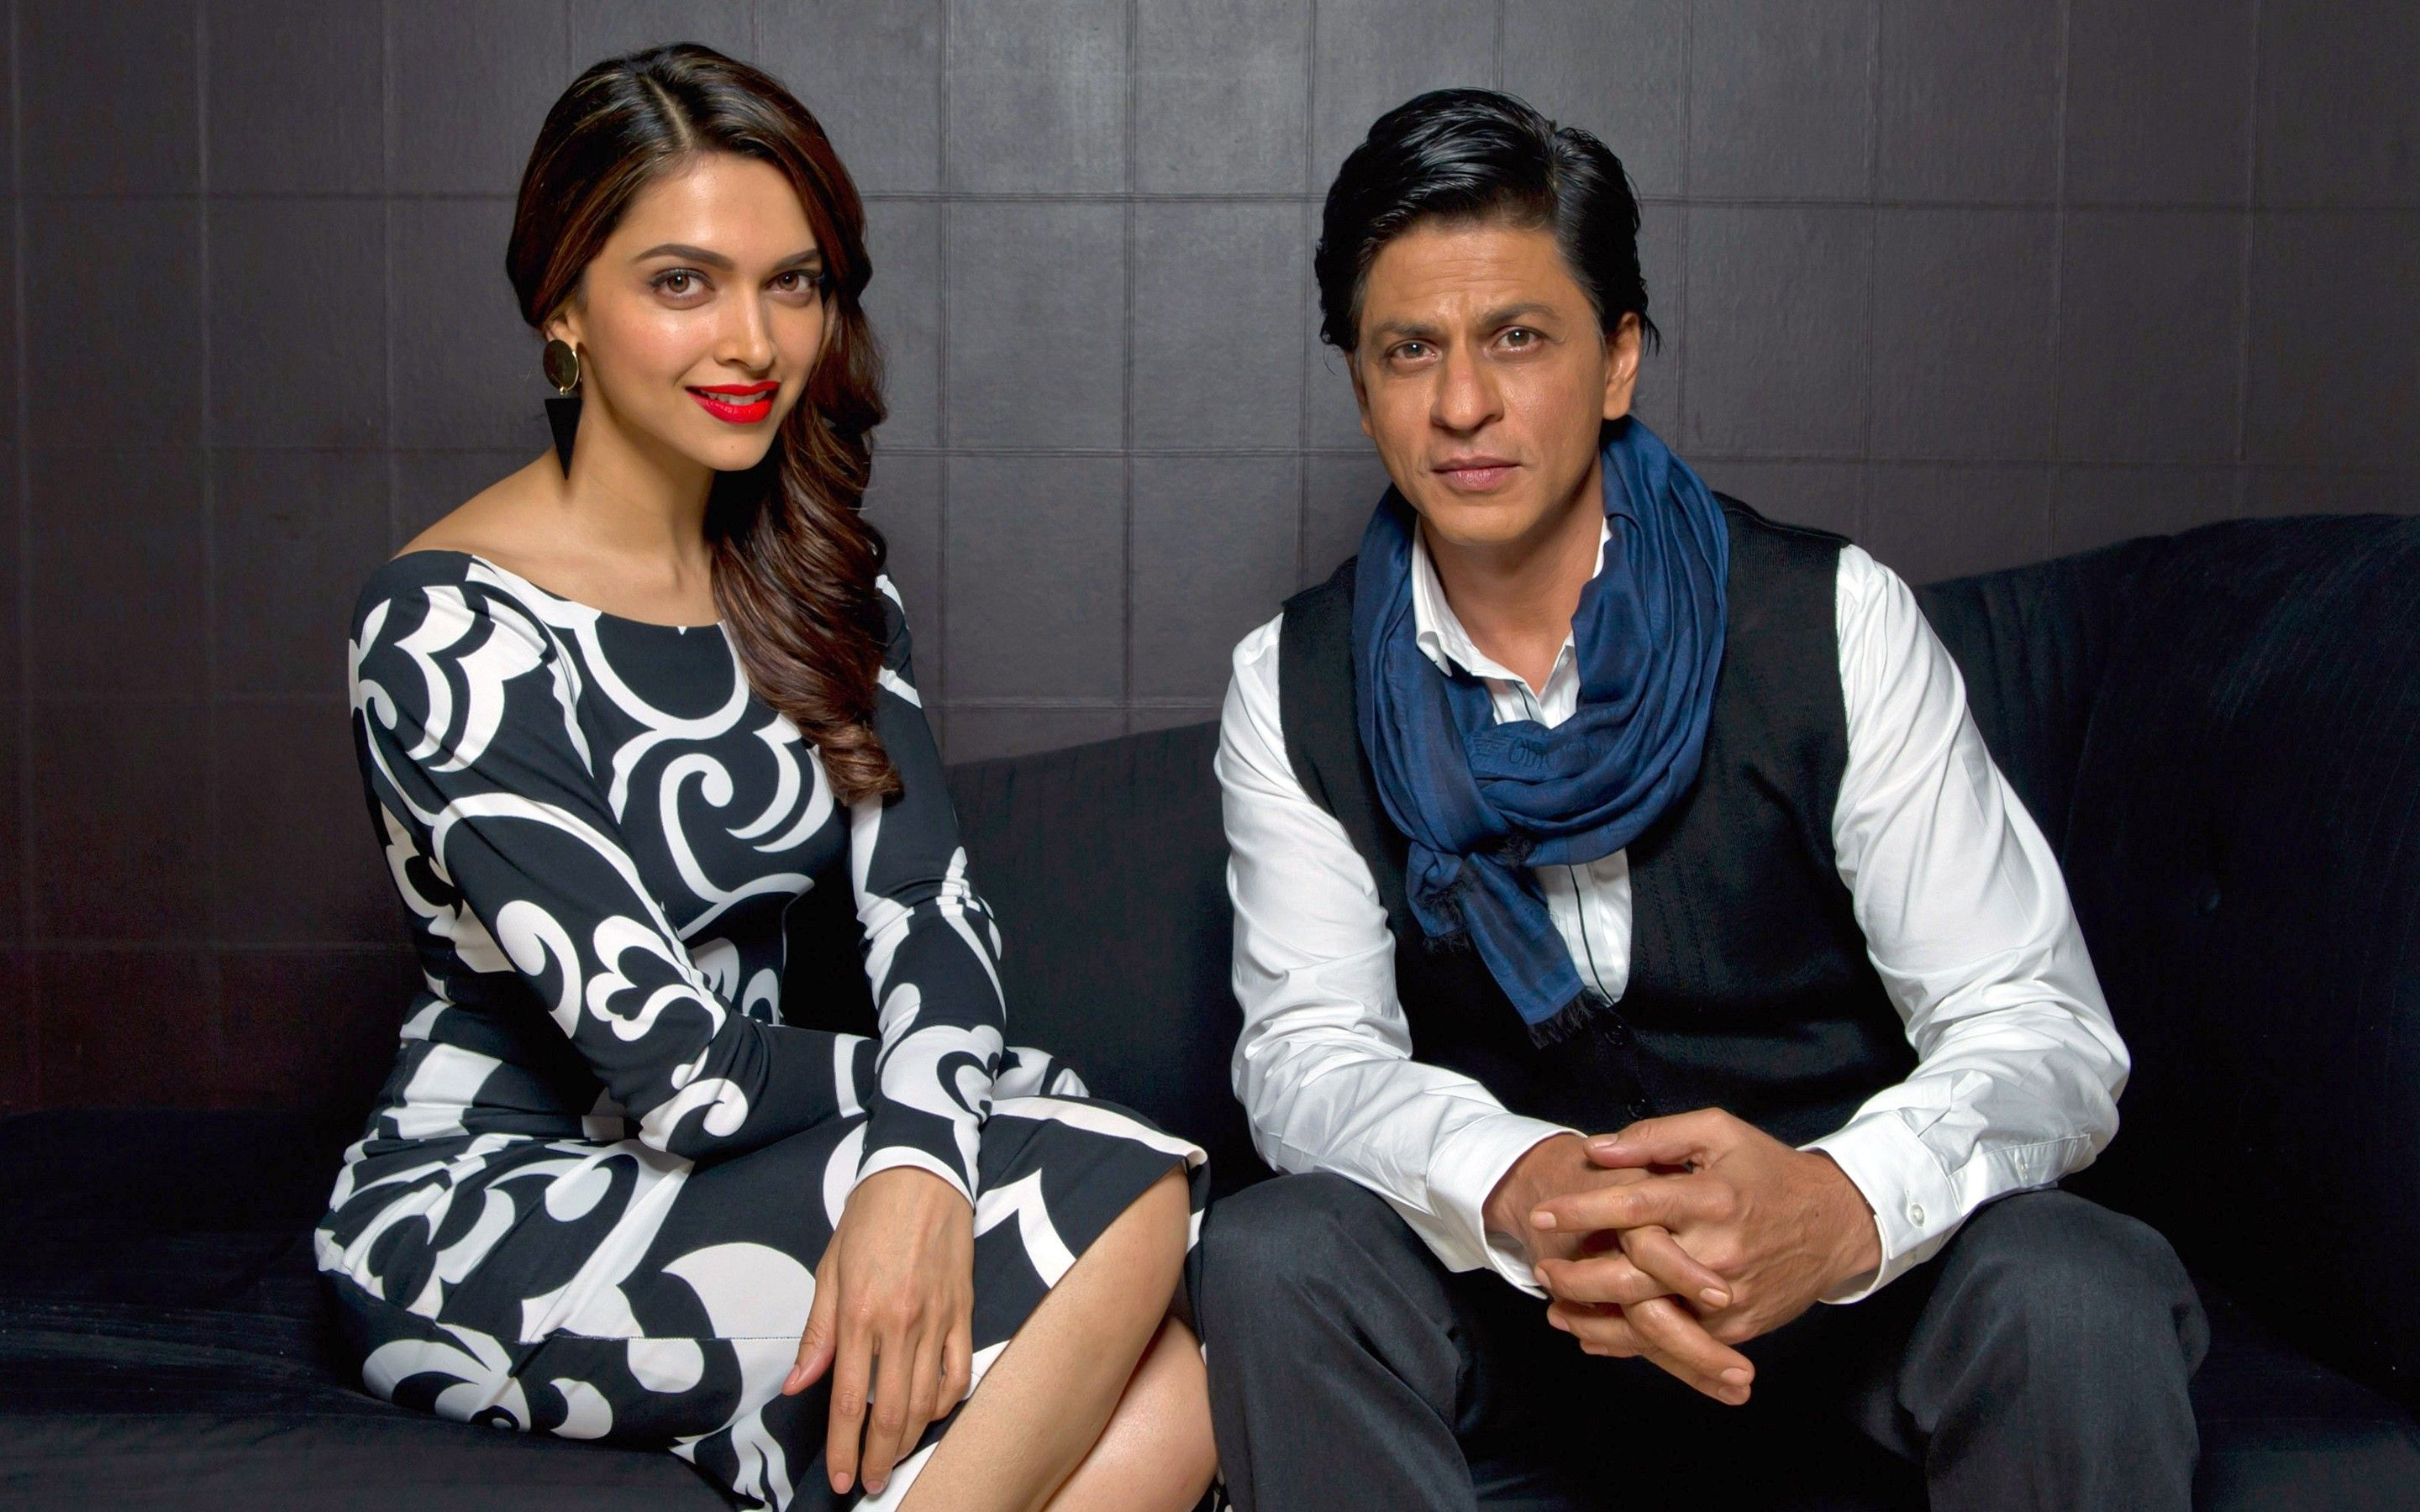 Shahrukh khan with deepika padukone wallpaper high quality 1024x768 - Deepika Padukone Hd Wallpapers And Pictures Download For Free Wallpapers For Desktop Pinterest Deepika Padukone And Wallpaper